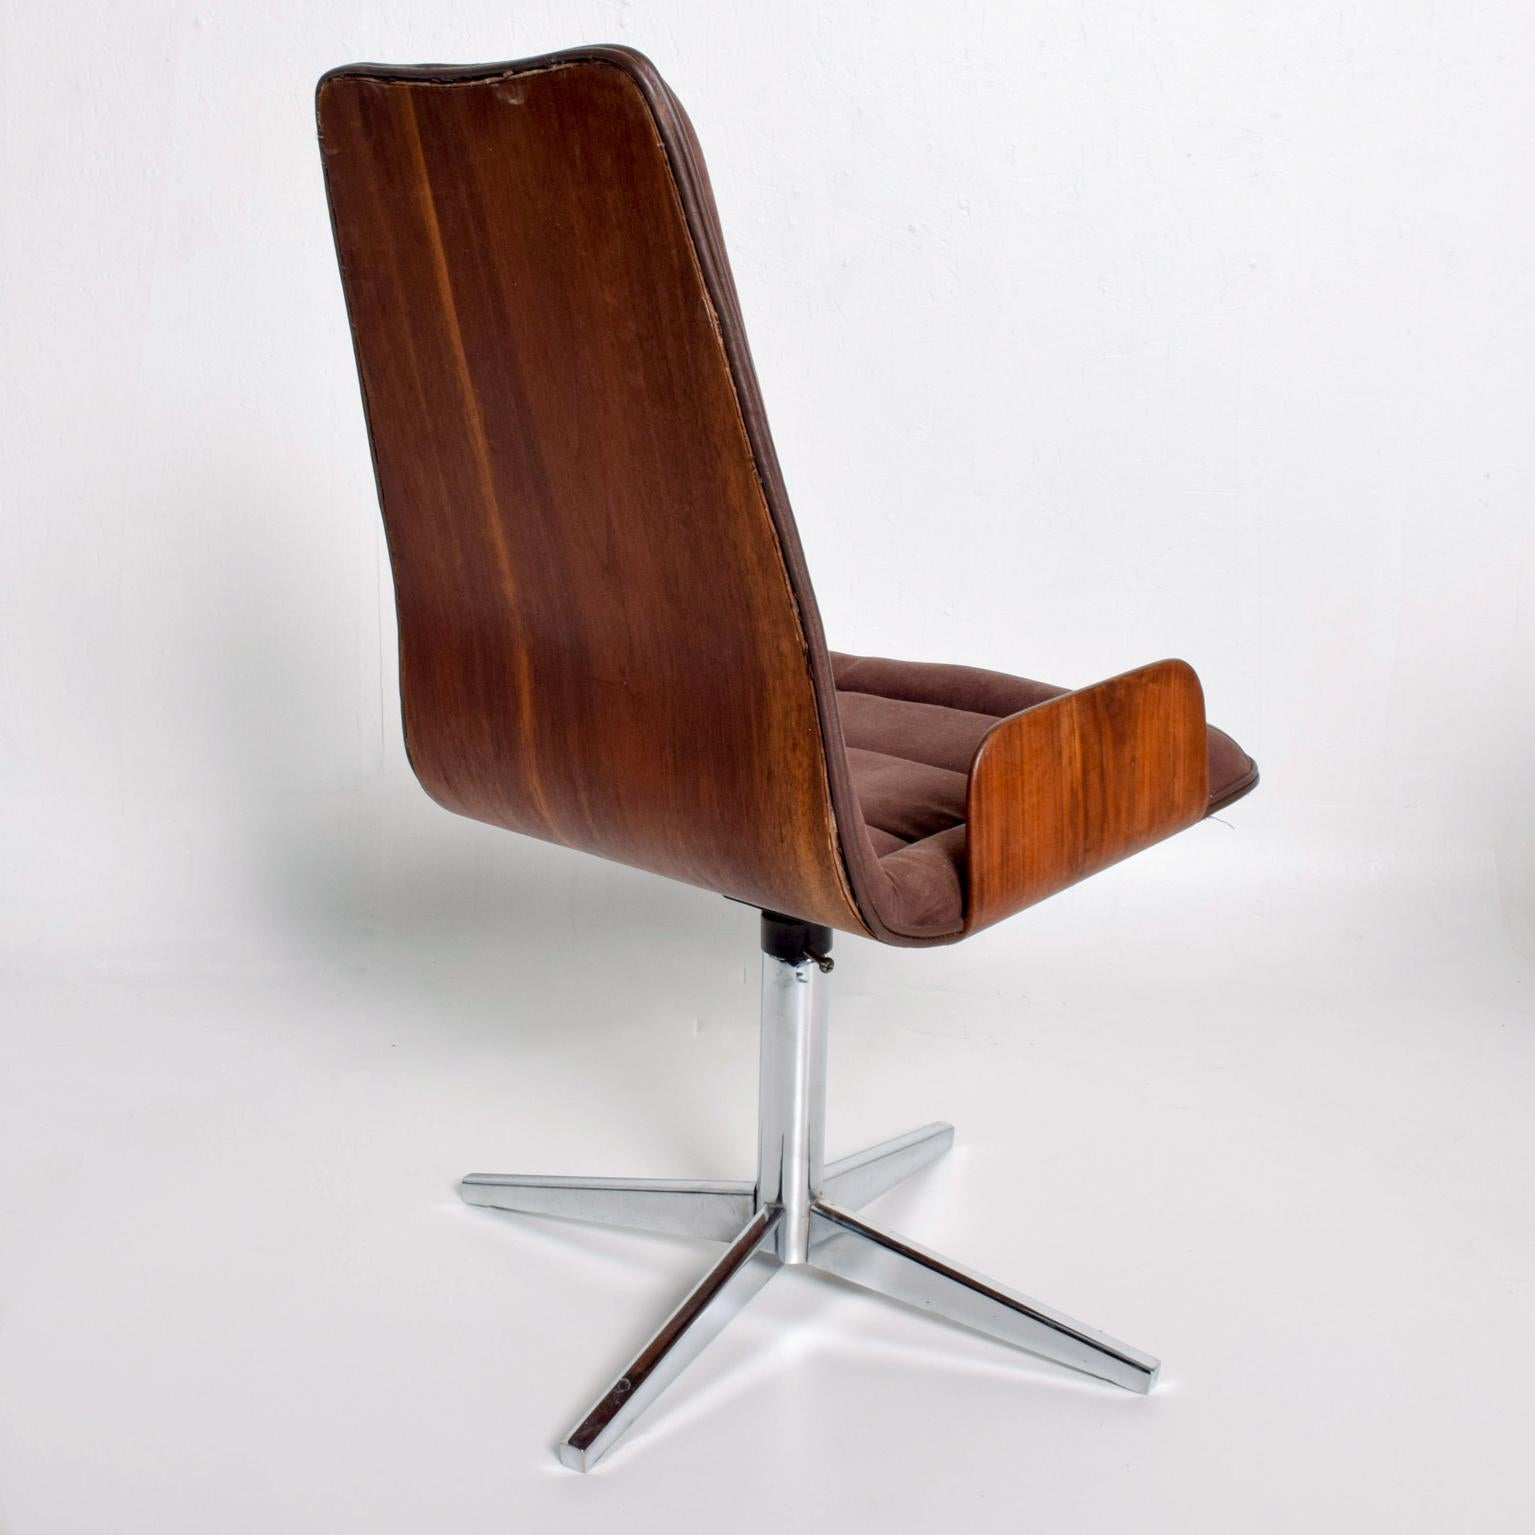 Sculptural Bent Walnut Plywood Dining Chairs Set of Six Mid Century Modern